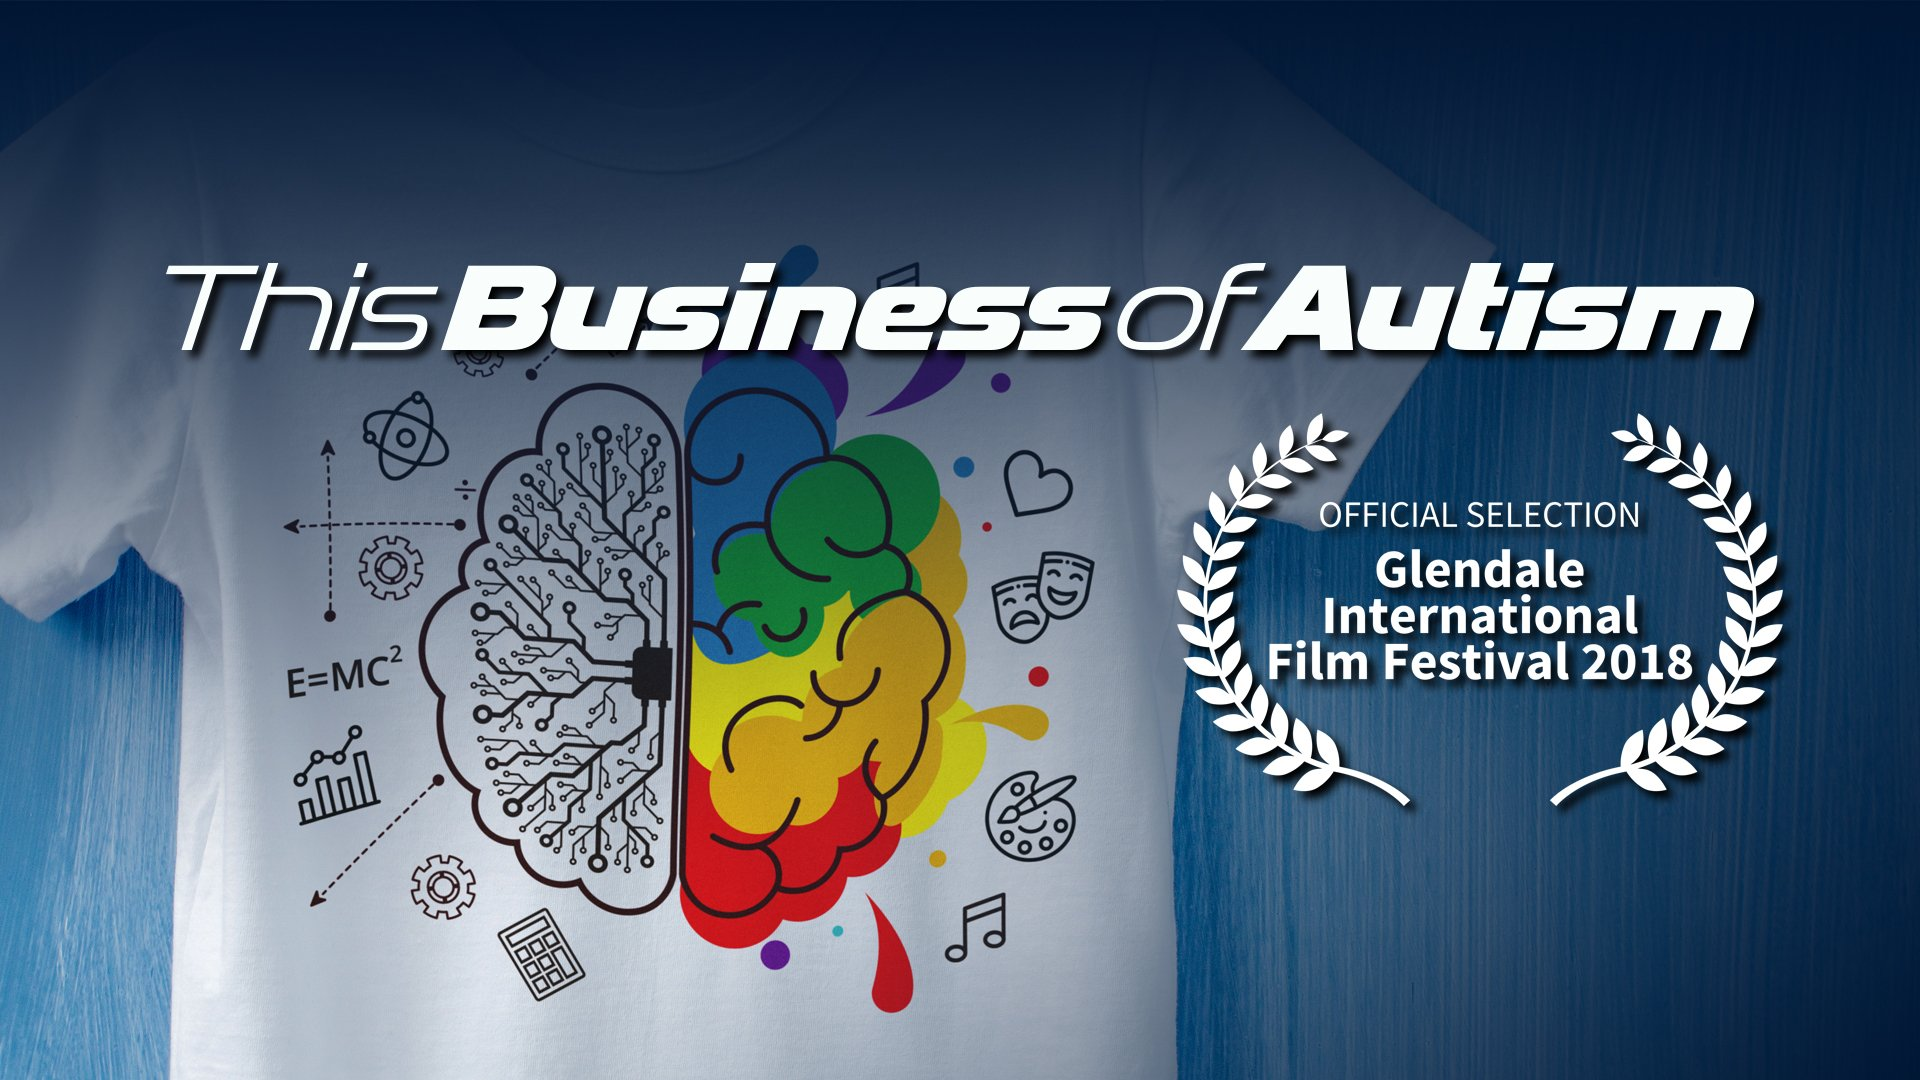 this business of autism official selection 2018 glendale international film festival